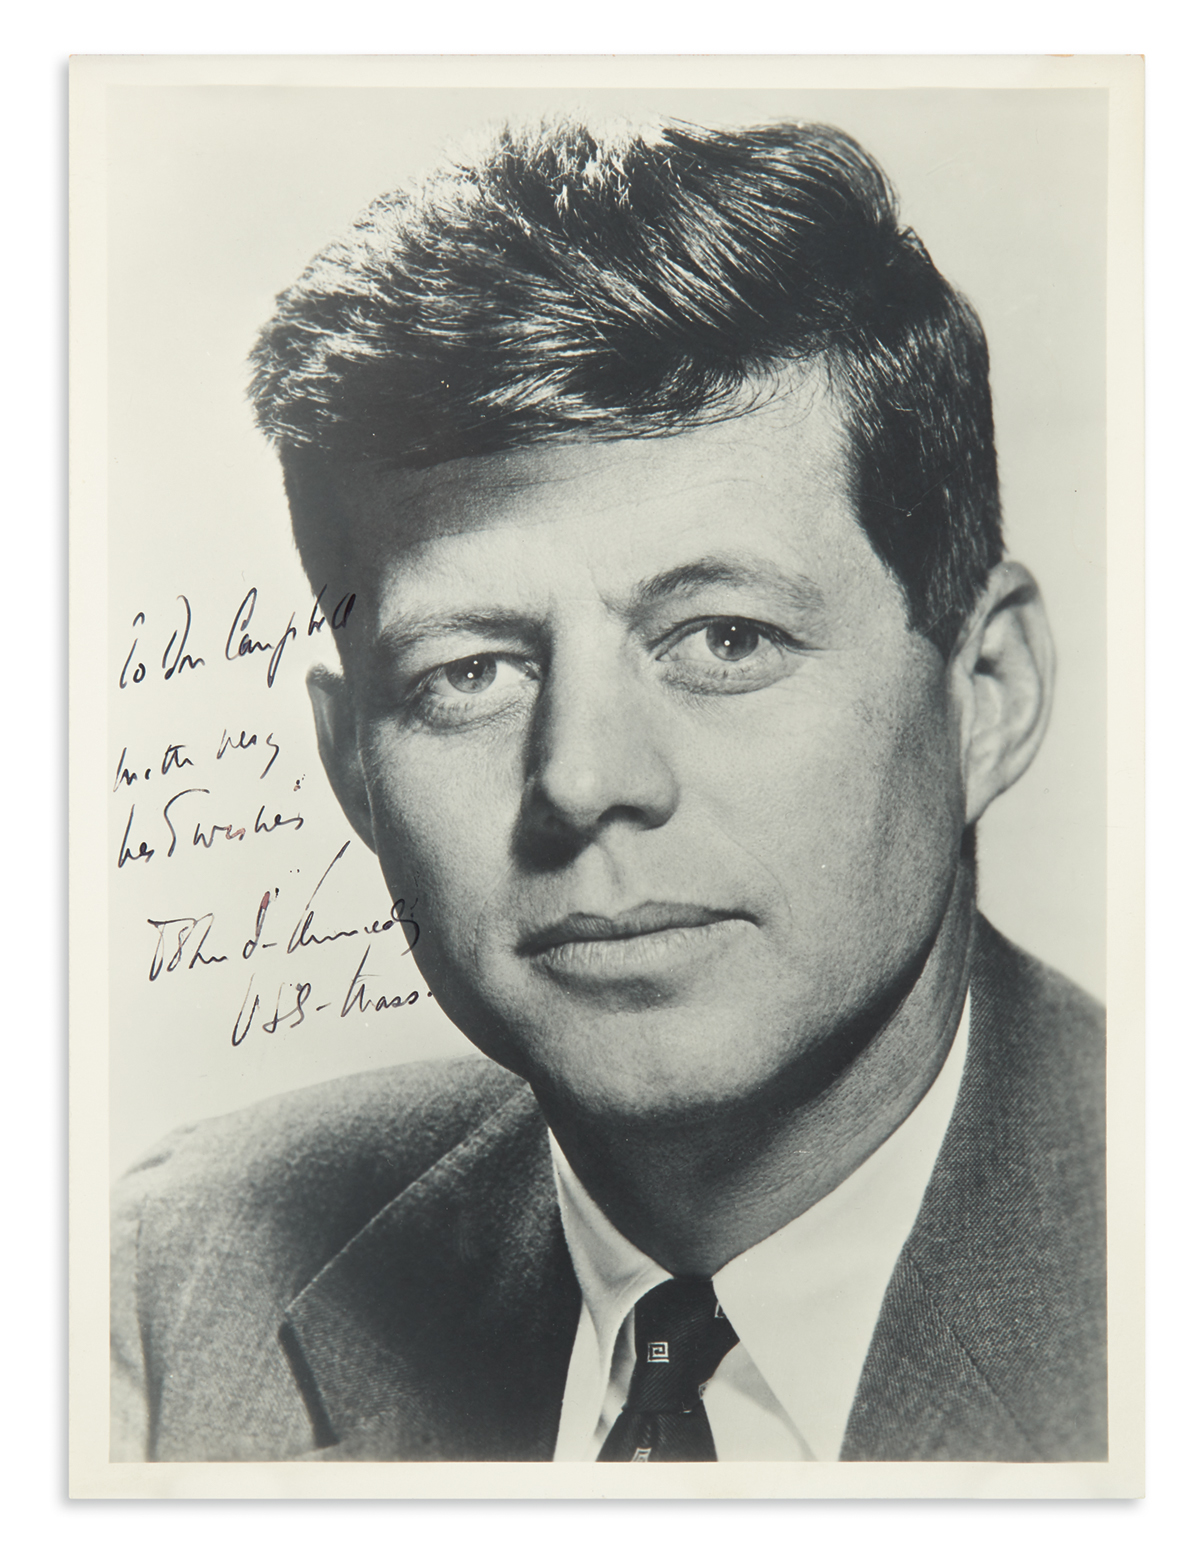 KENNEDY-JOHN-F-Photograph-Signed-and-Inscribed-as-Senator-To-Don-Campbell--with-very--best-wishes--John-F-Kennedy--USS-Mass